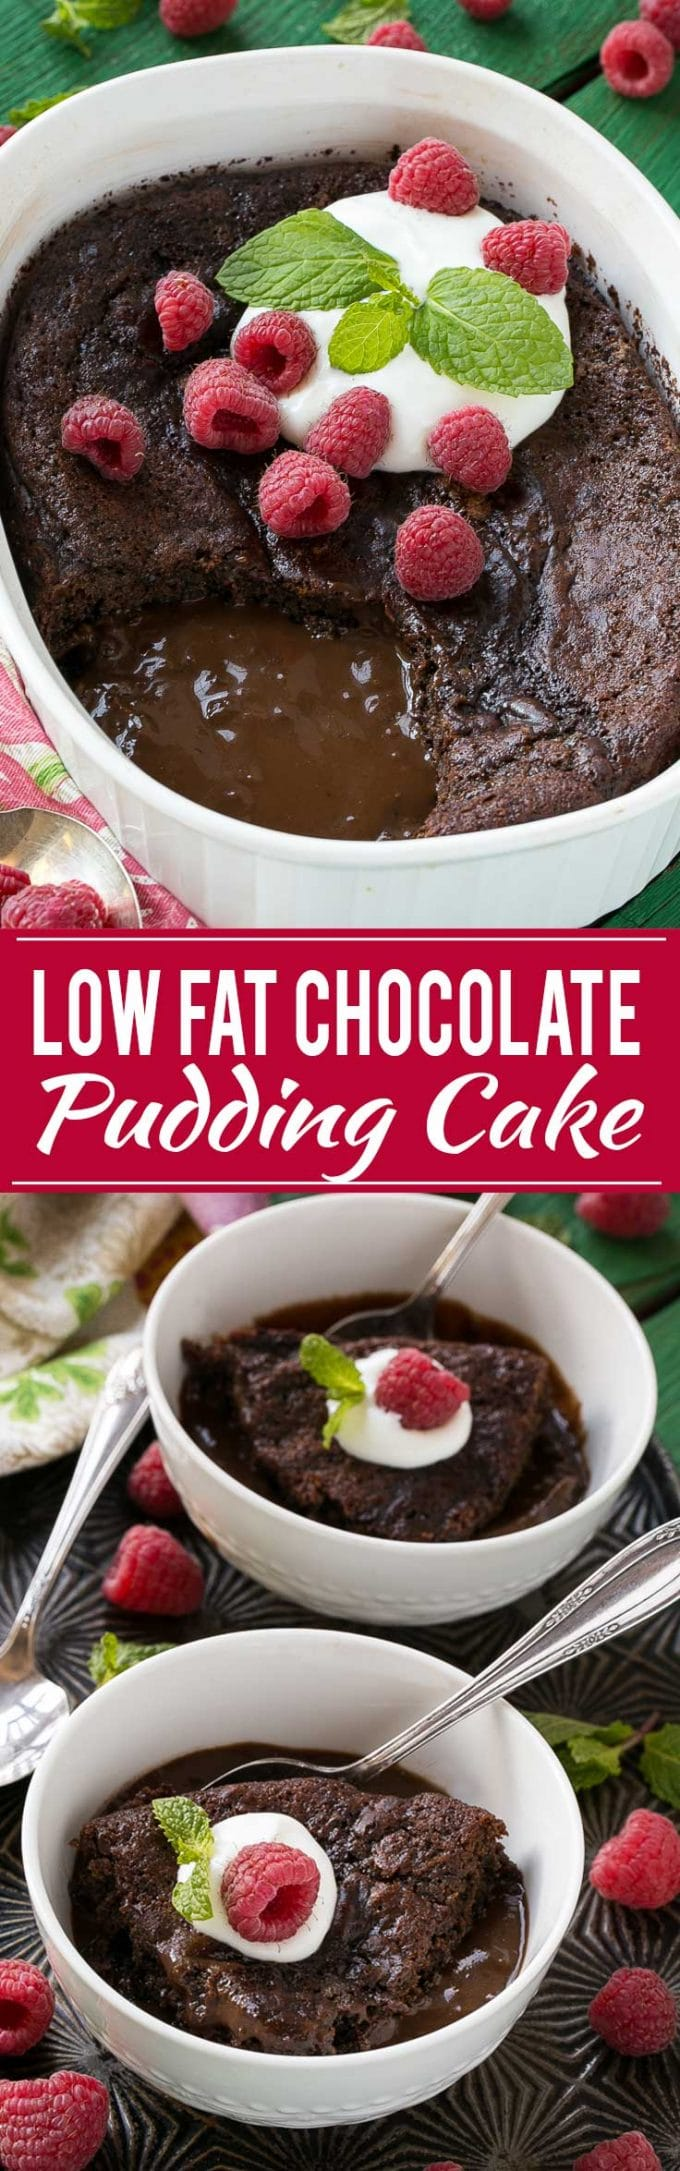 A quick and easy chocolate pudding cake that also happens to be low fat.